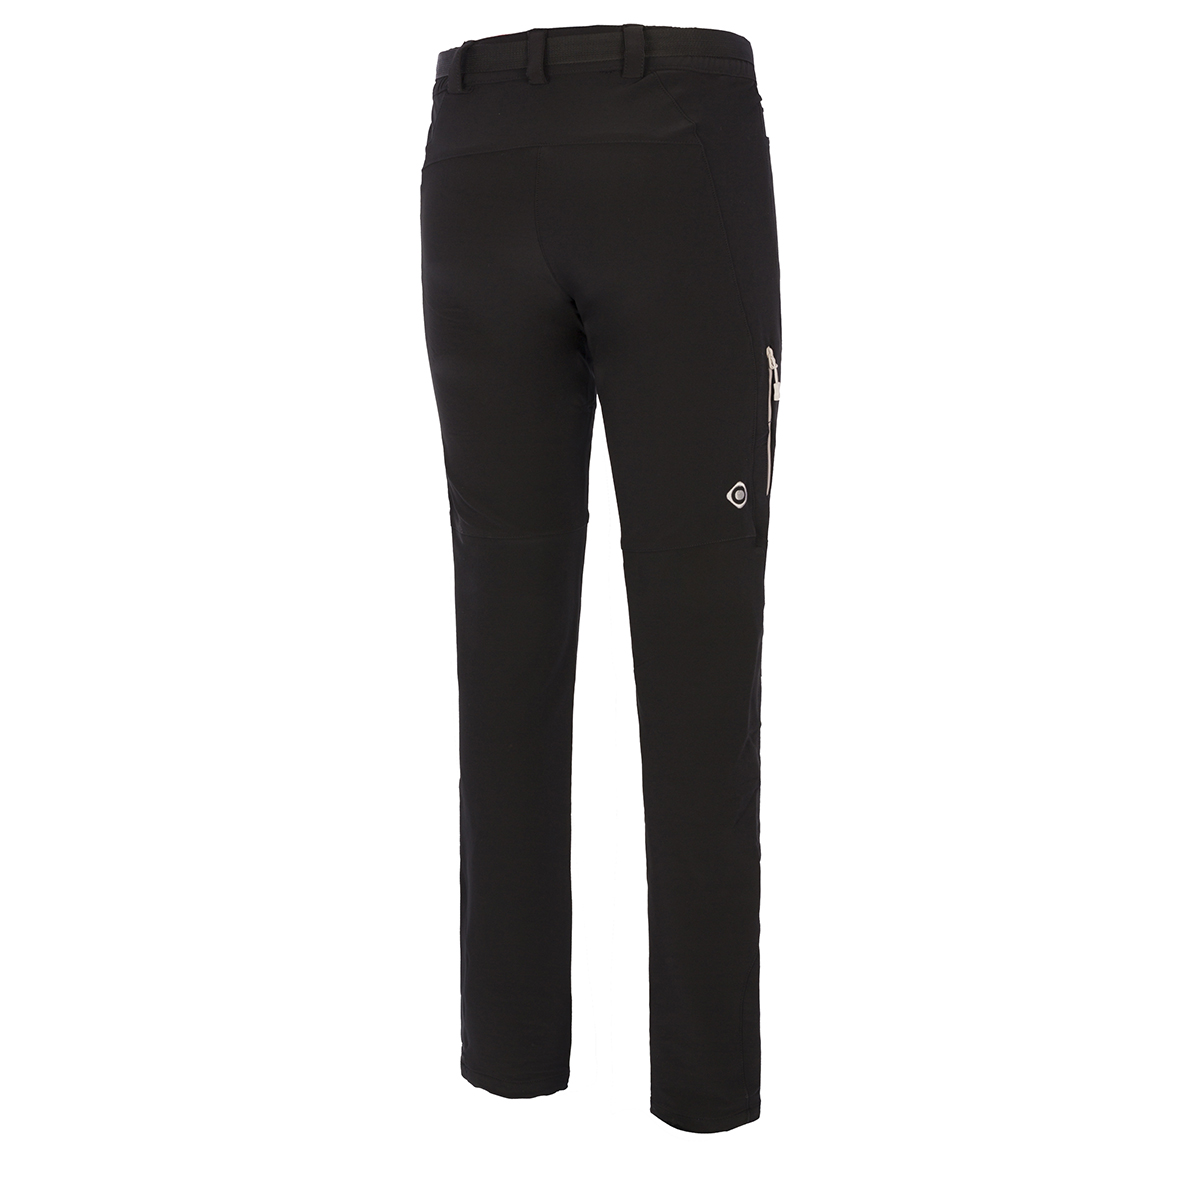 WOMAN'S ELAT STRETCH PANT BLACK